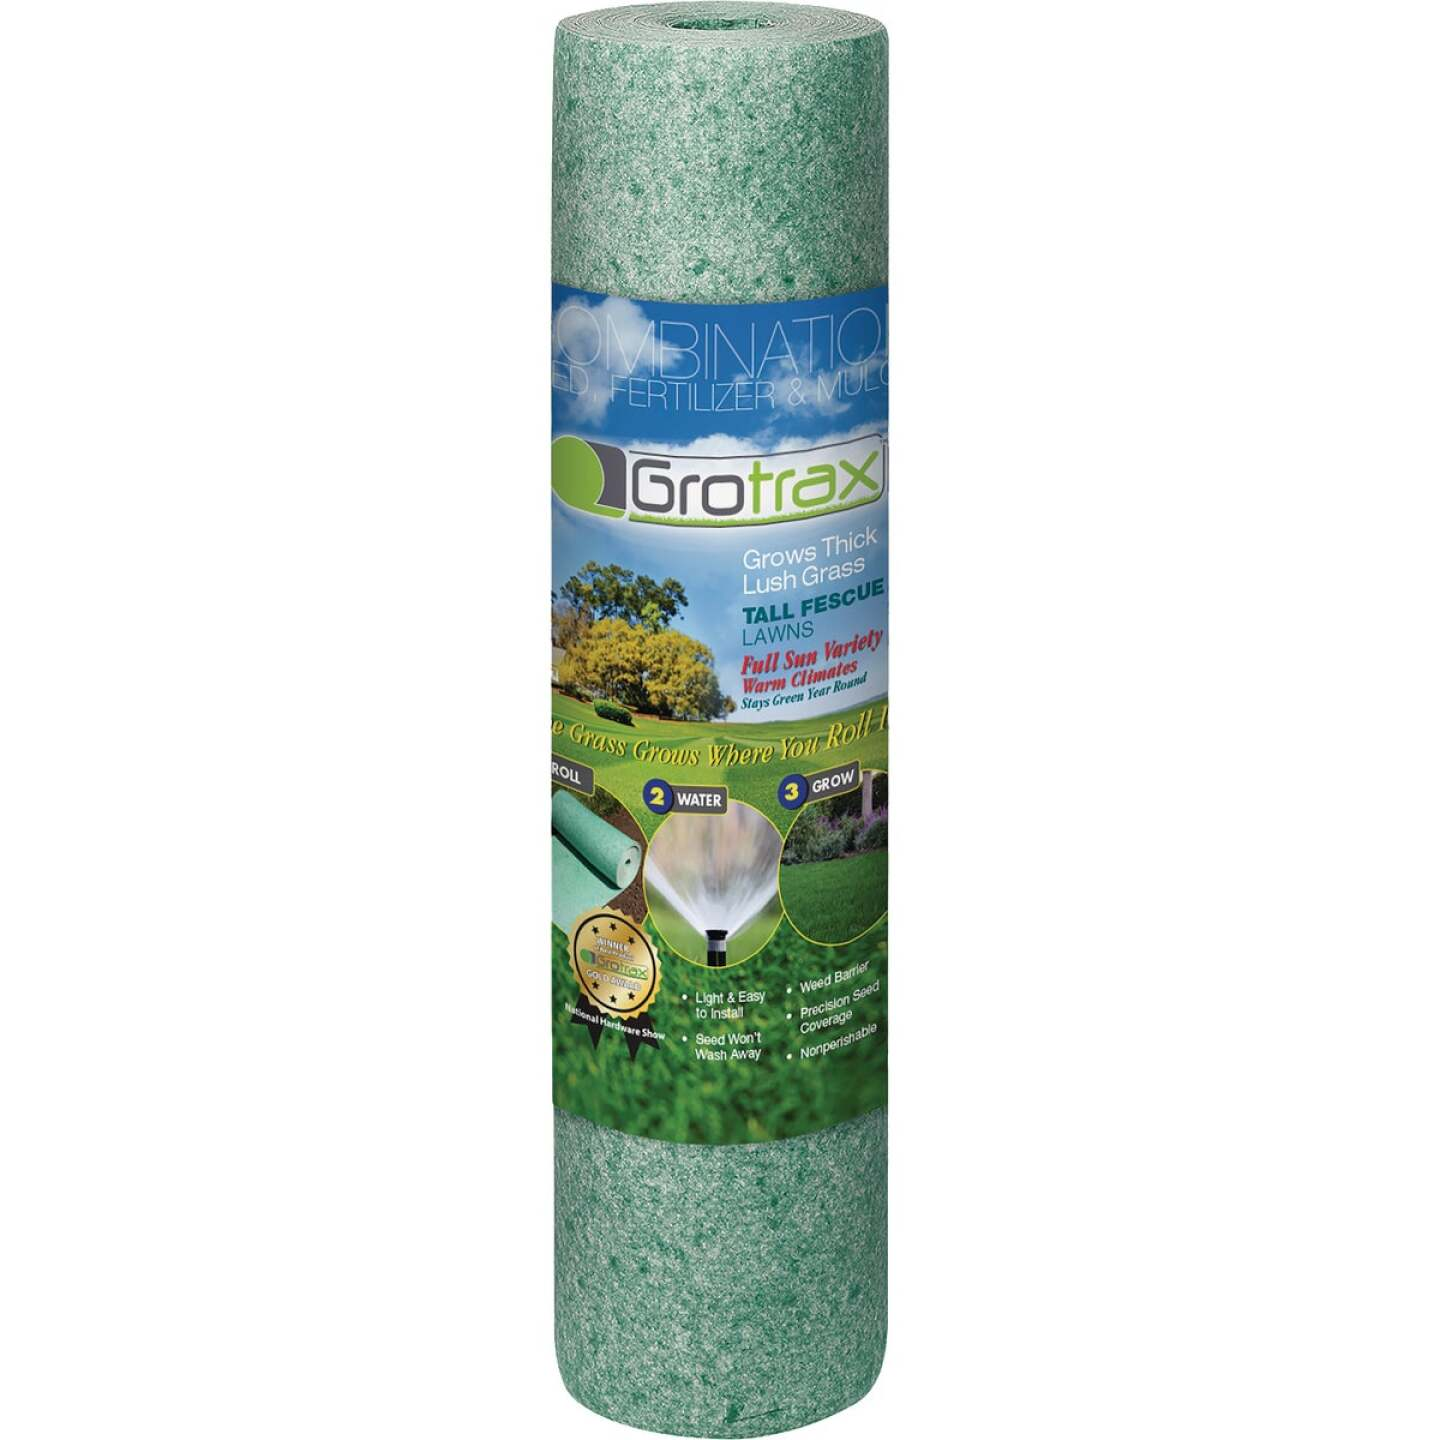 Gro Trax Big Roll 100 Sq. Ft. Coverage Tall Fescue Grass Seed Roll Image 1